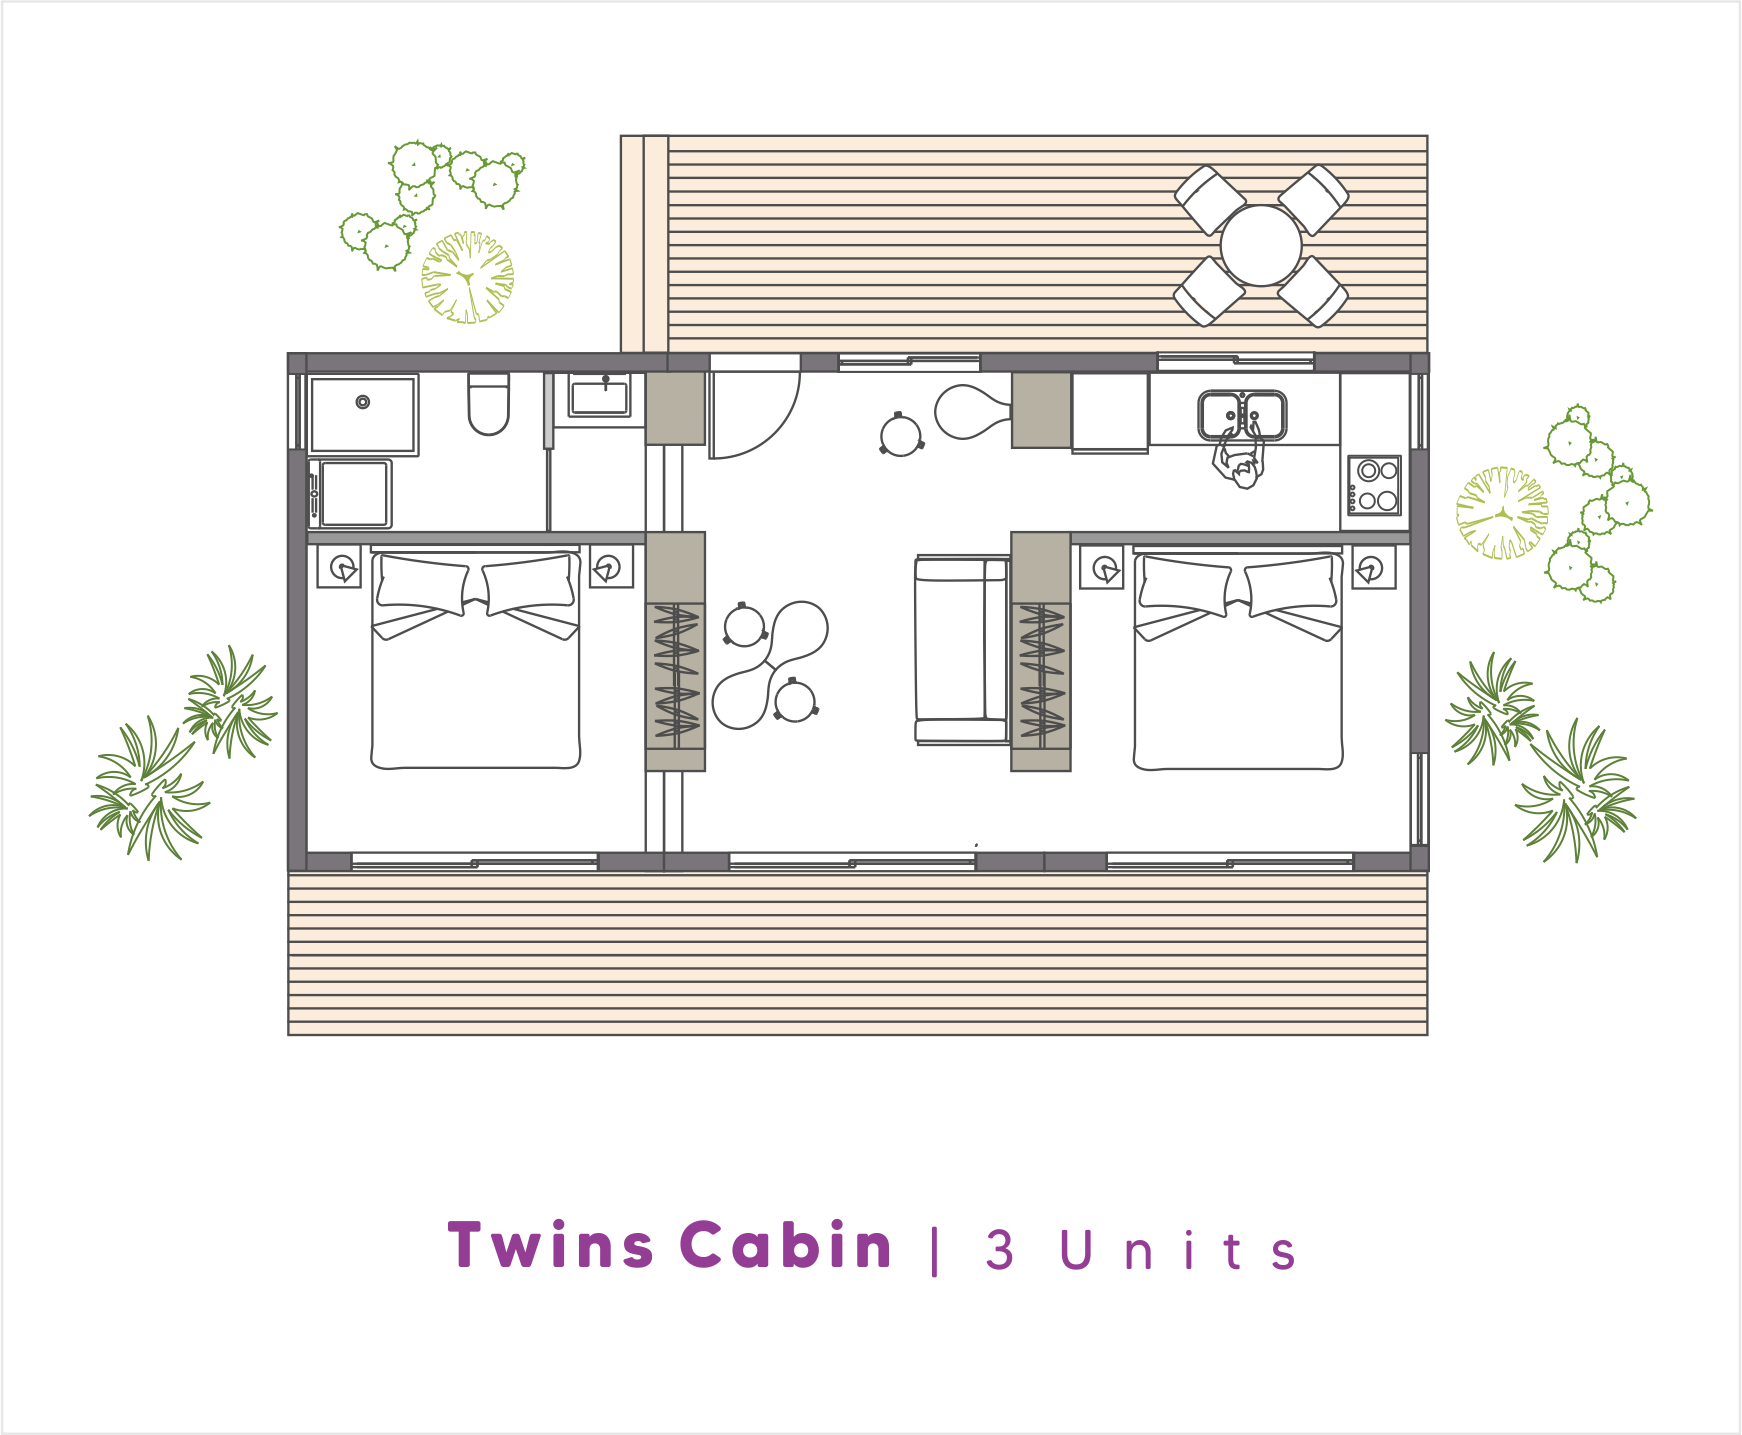 NoRootsHomes Modular Eco Home | Twins Cabin | 3 Units